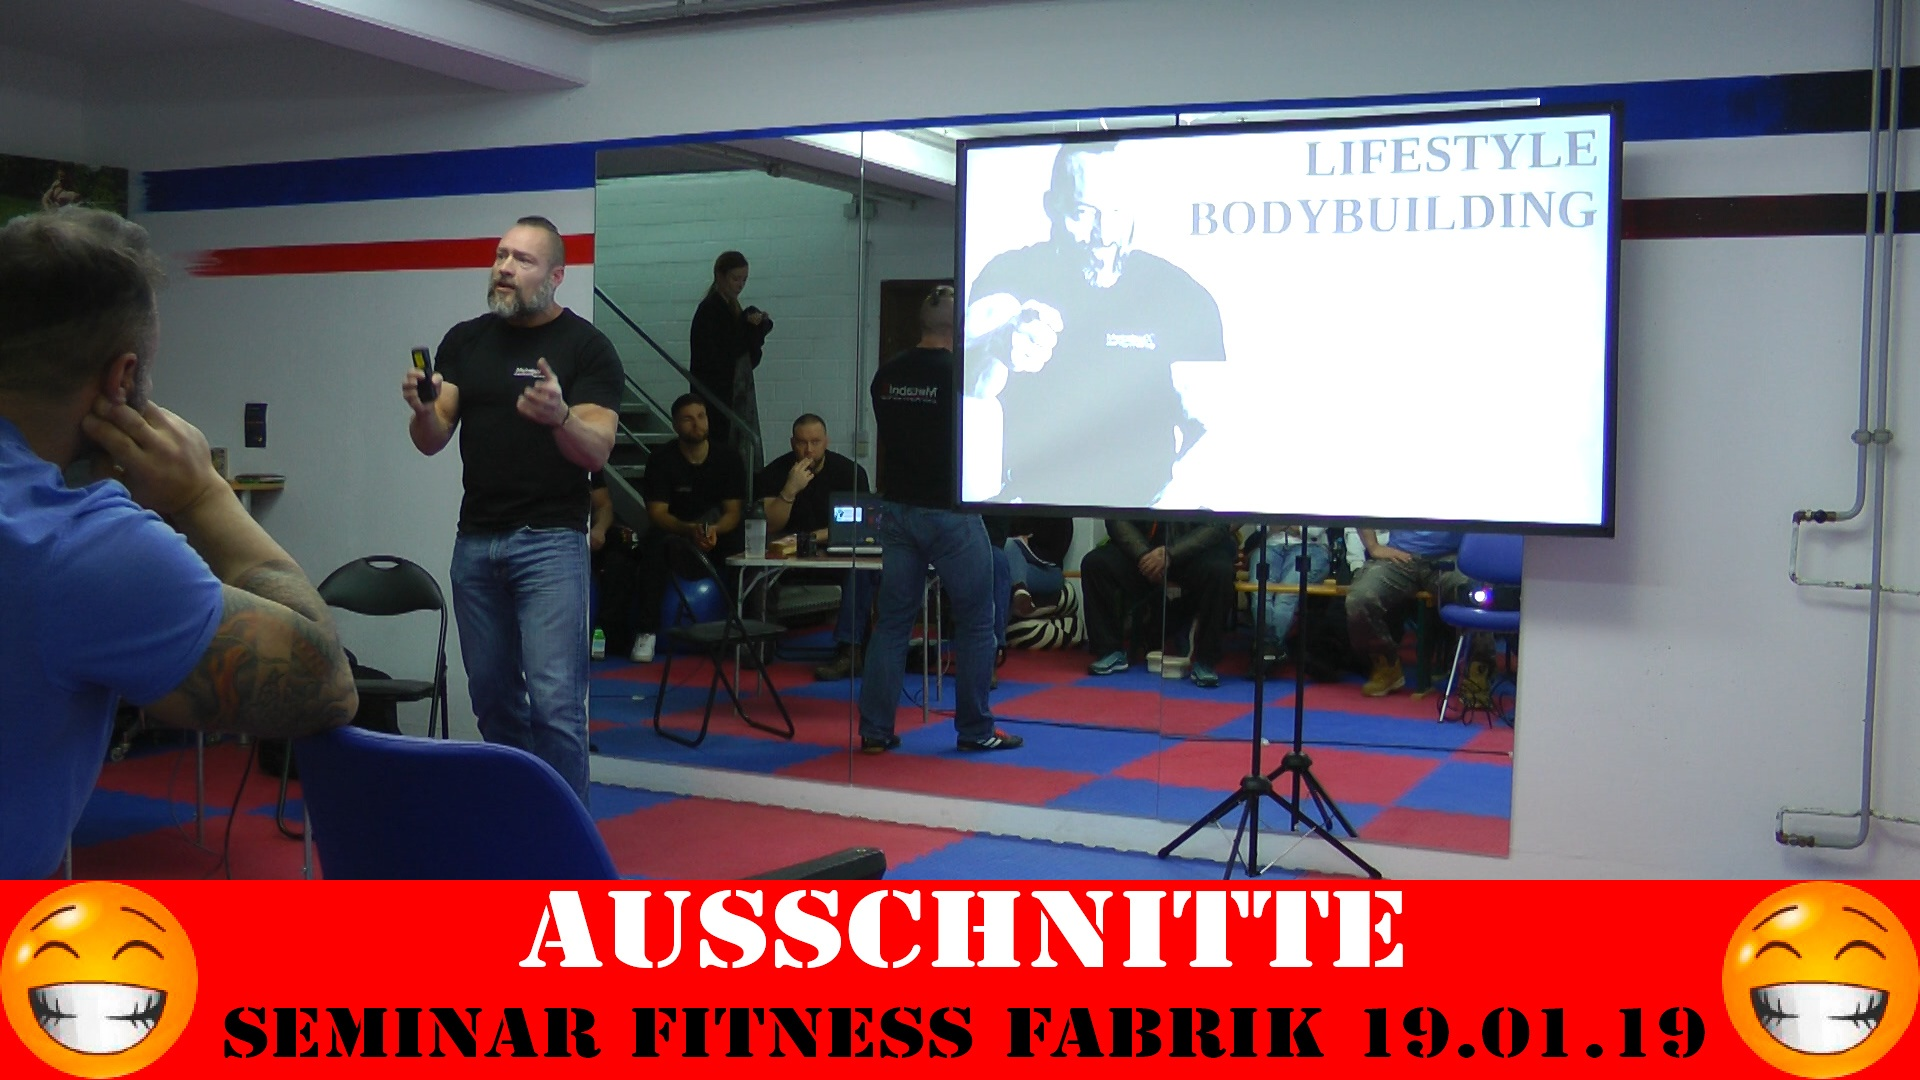 Video: Trailer - Ausschnitte aus dem Seminar Bodybuilding Lifestyle